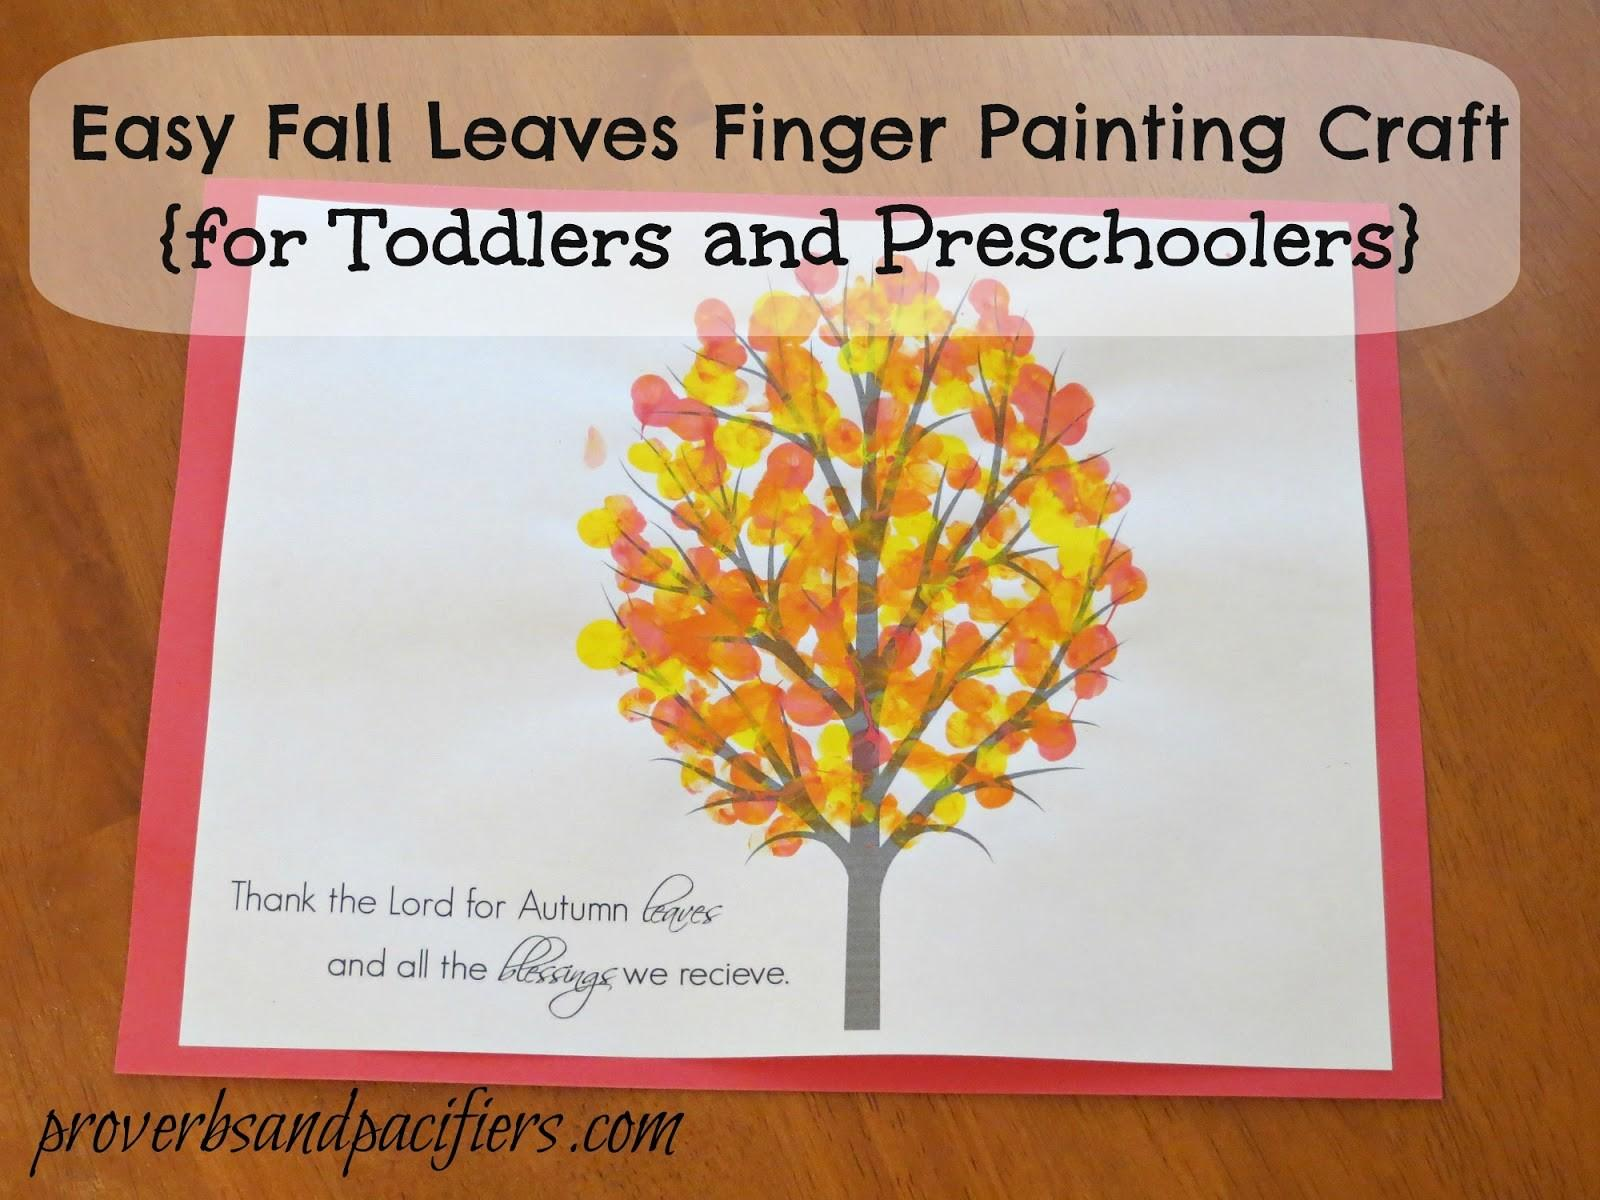 Proverbs Pacifiers Easy Fall Leaves Finger Painting